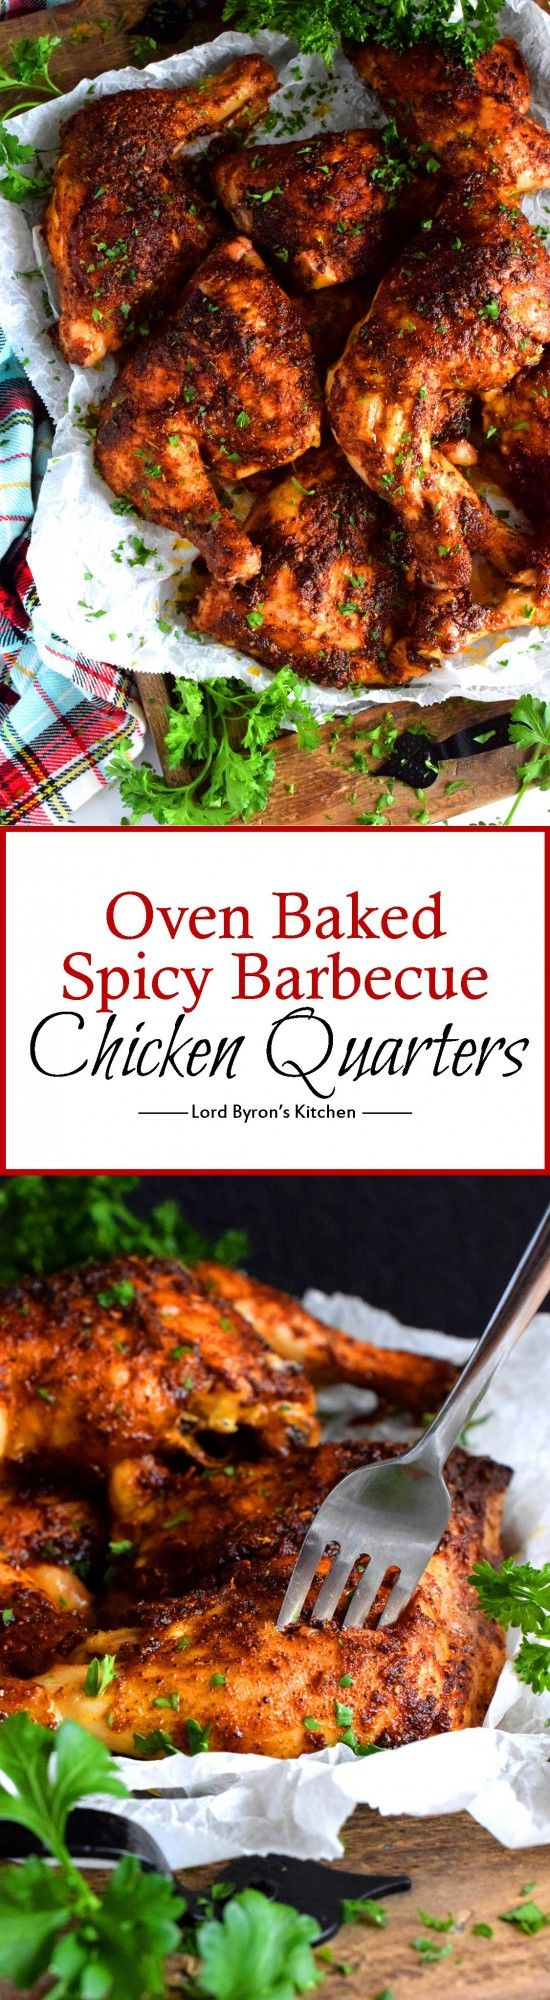 Oven Baked Spicy Barbecue Chicken Quarters – Lord Byron's Kitchen